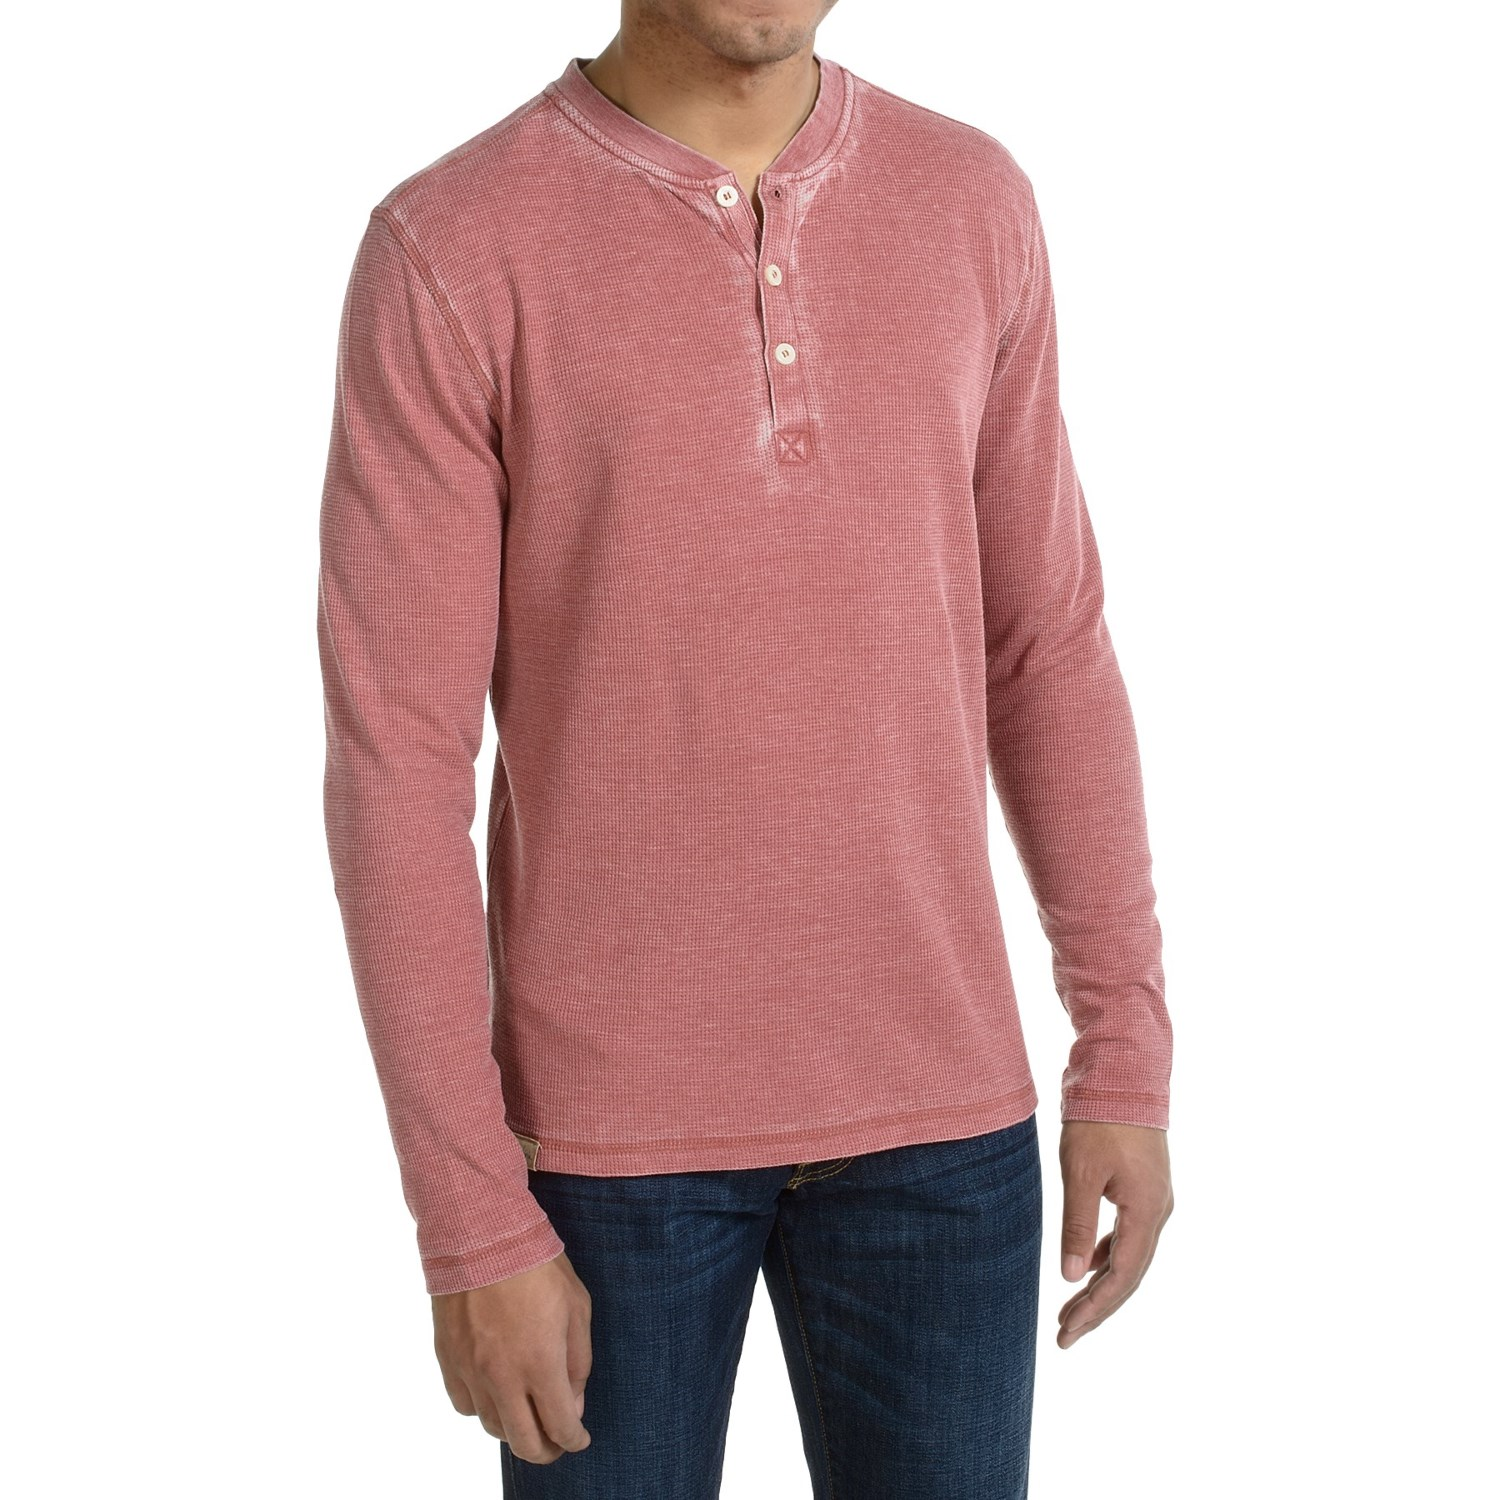 jkl waffle knit henley shirt for men save 83